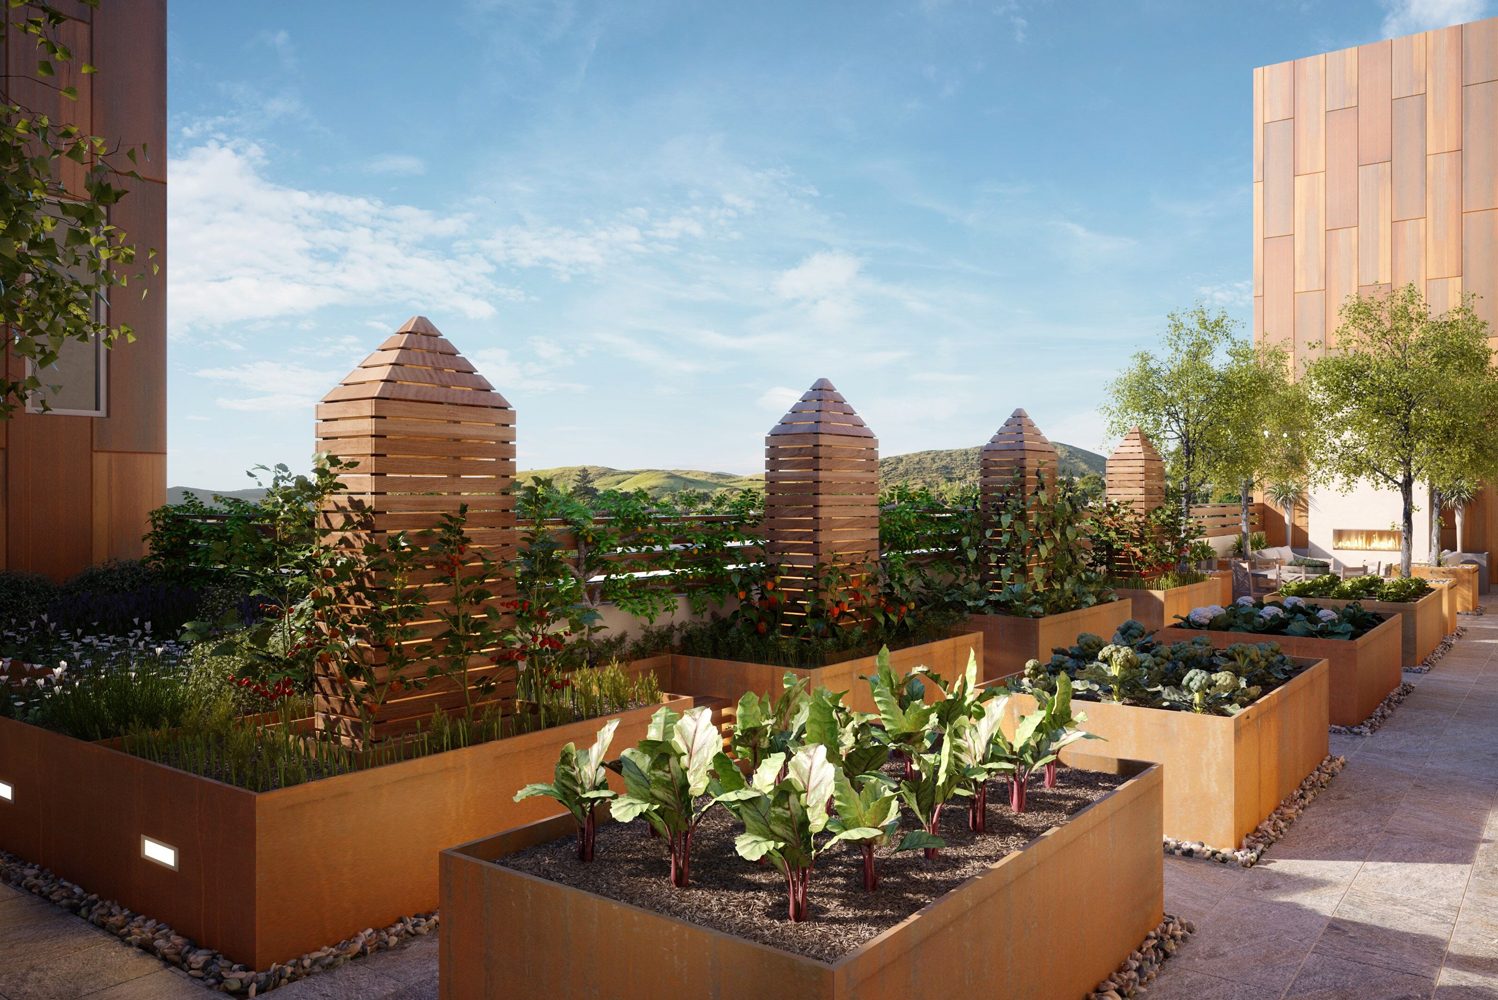 A key sustainable feature of Hotel Cerro is the Edible Garden.